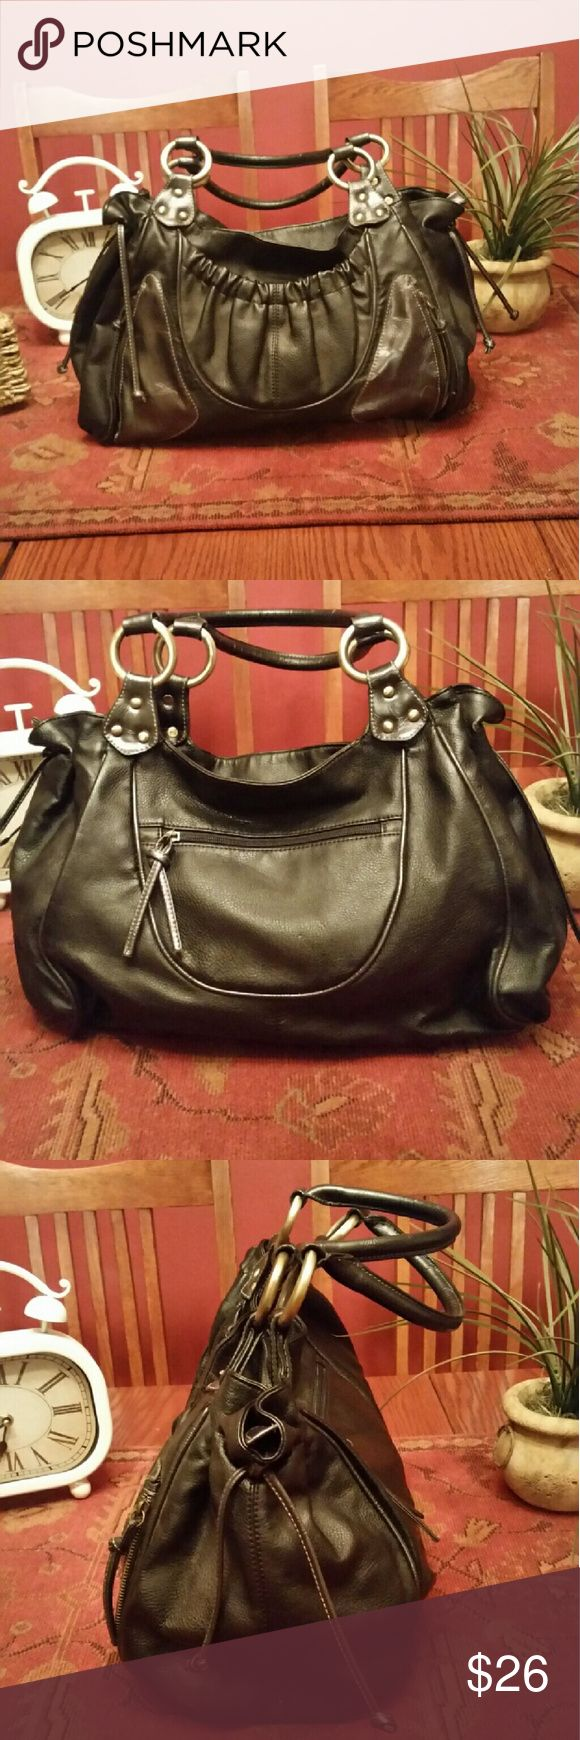 David Jones Paris X Large  LeatheShoulder Handbag Xlarge, black,very good condition with the exception of interior zip compartment side seam rip,can be mended with material seam tape, it has 2 slip pockets, 1 zipper pocket, exterior has a side zipper pocket on each side of bag, 1 zipper compartment in back of bag and a open pocket in front that has a snap closure, for a preowned bag it's in very good condition and x large, pics don't do it justice  much prettier in person David Jones Paris…